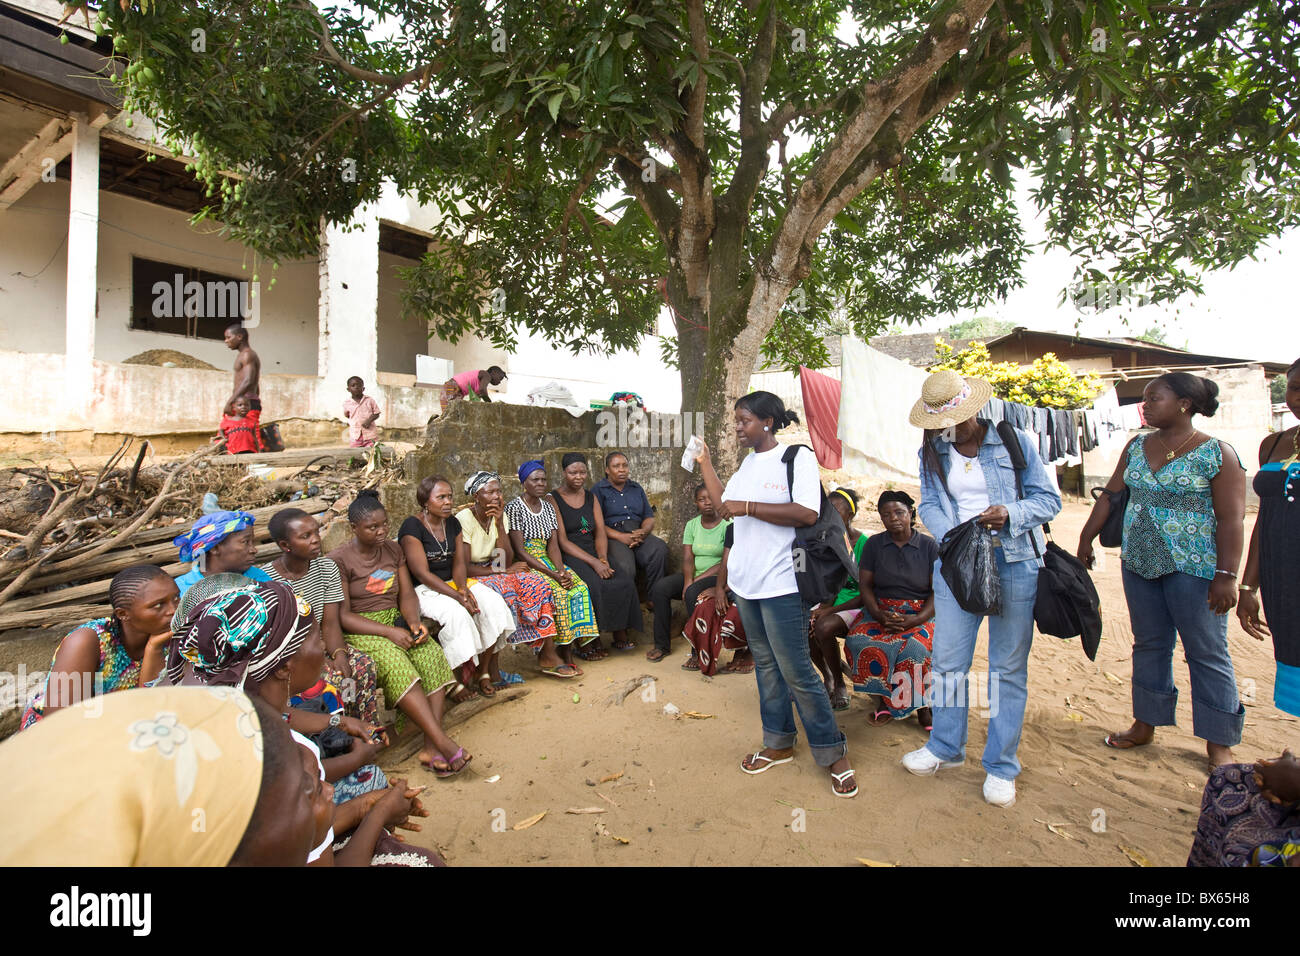 A community health awareness group meets in a neighborhood in Monrovia, Liberia, West Africa. - Stock Image